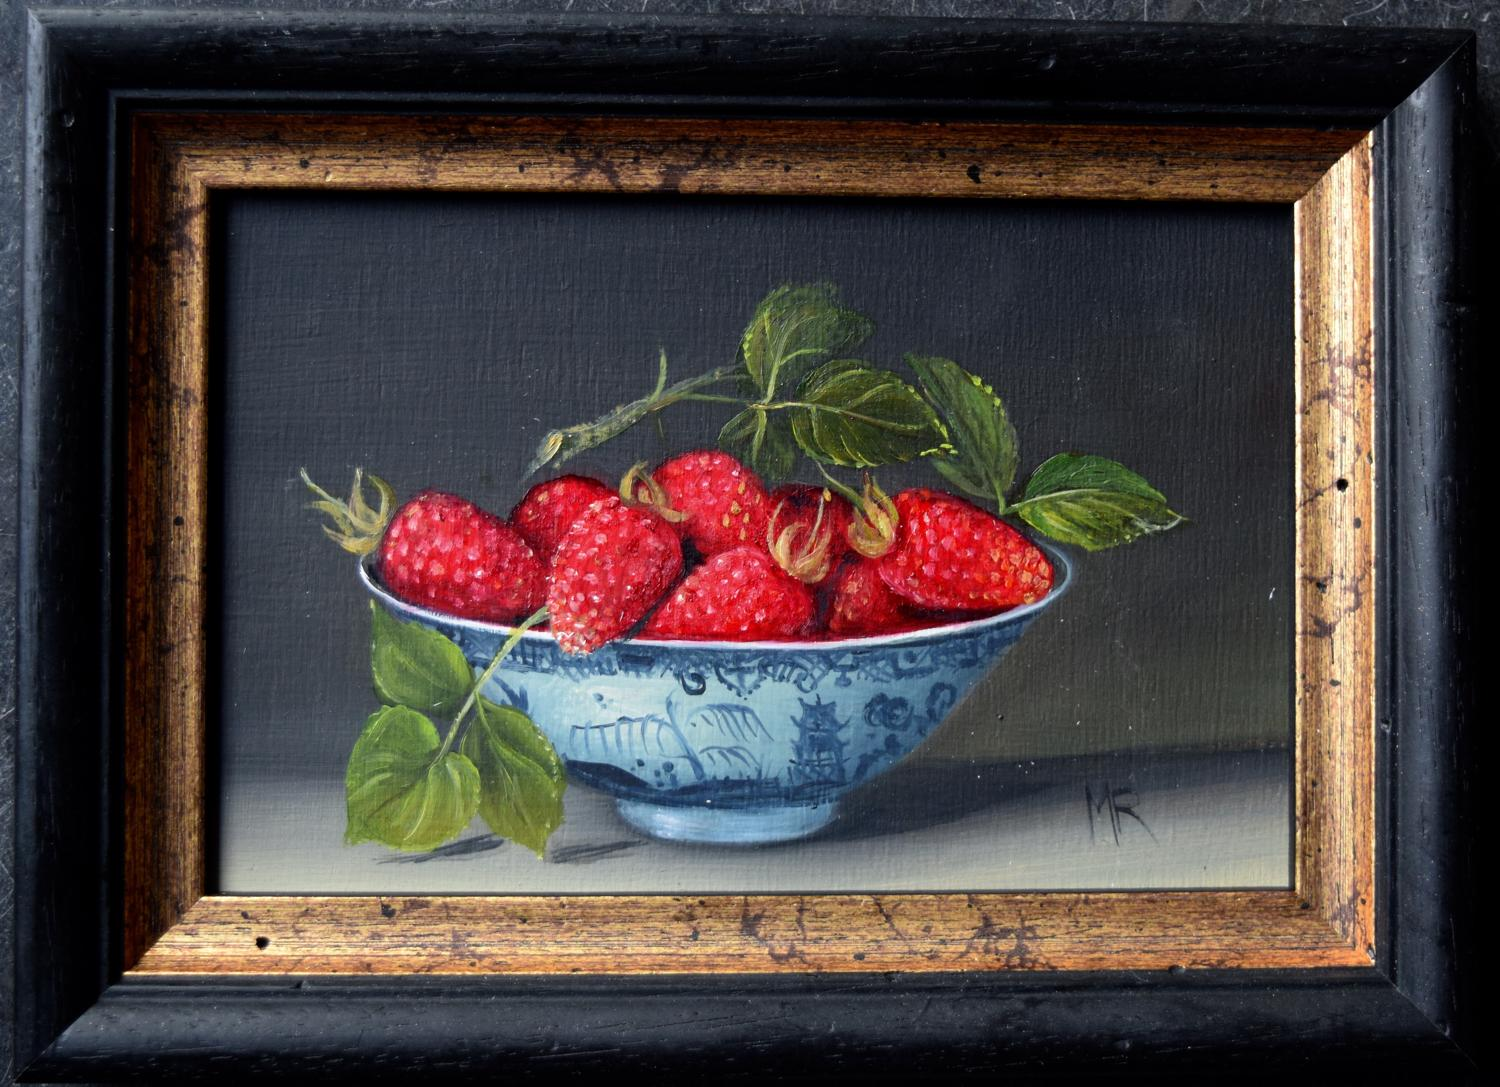 Oil painting of a small bowl of raspberries